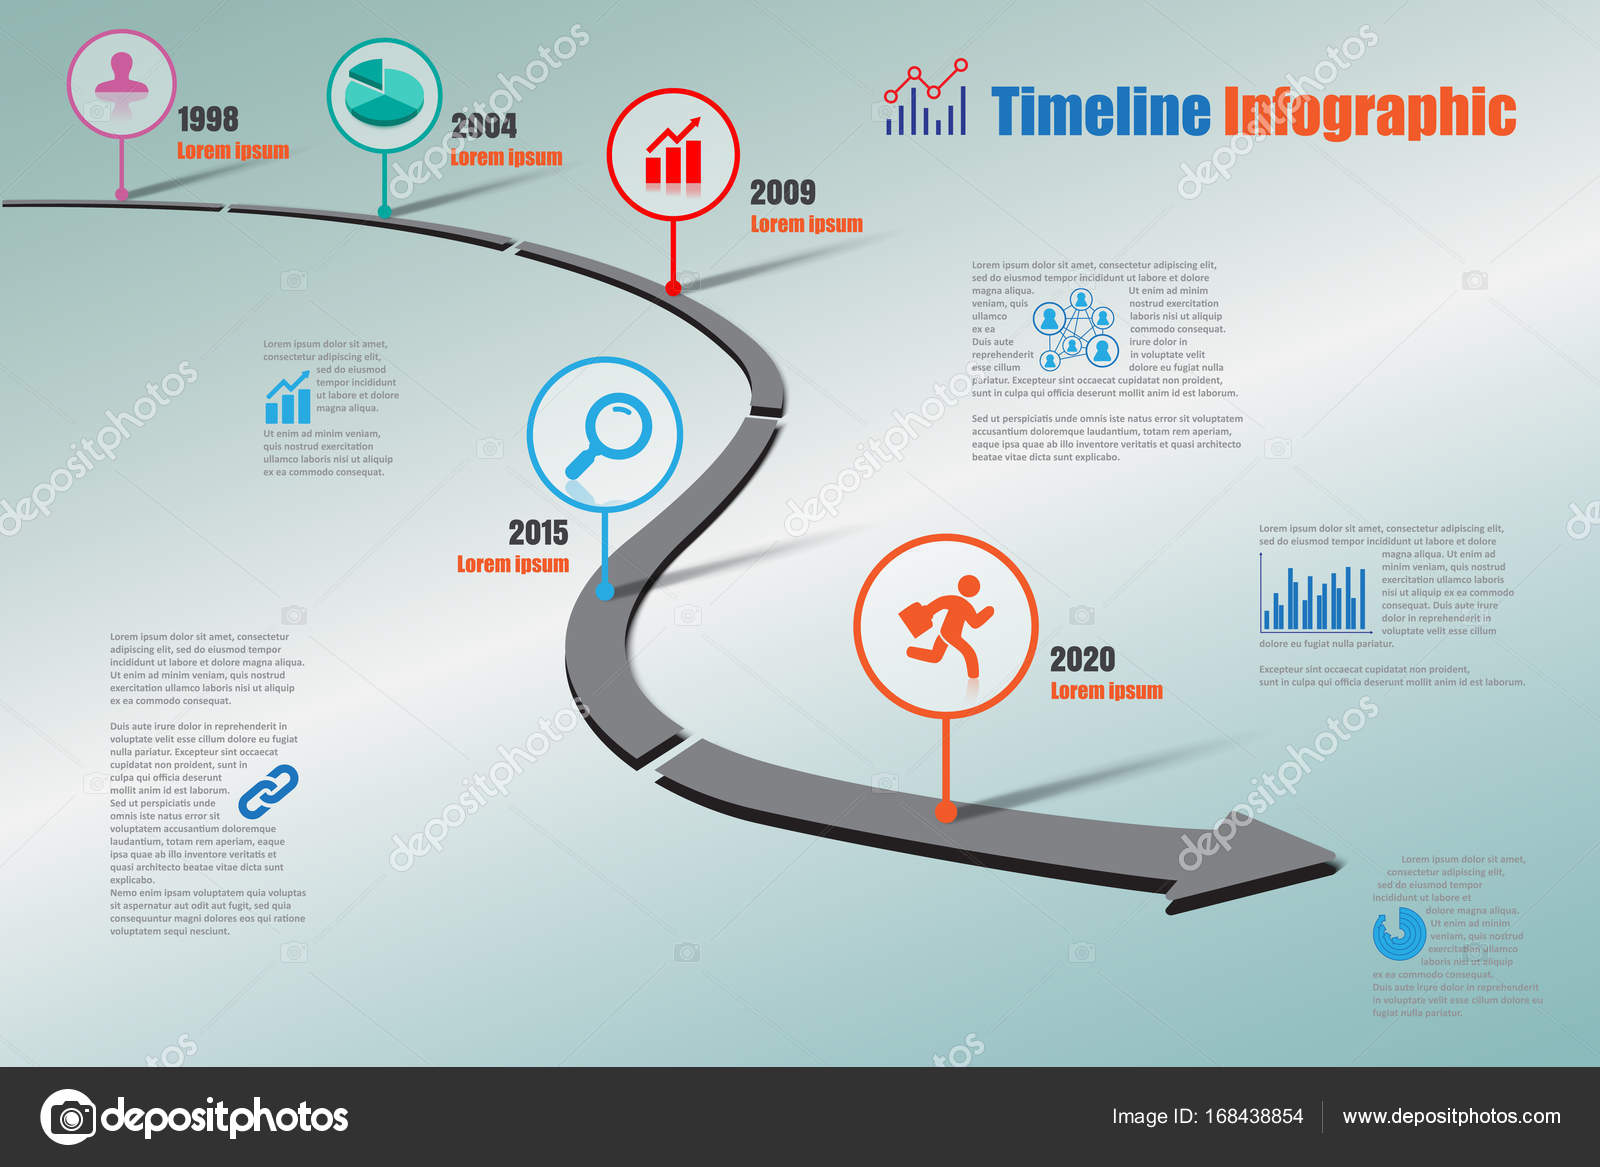 business road map timeline infographic icons designed for abstract background template milestone element modern diagram process technology digital marketing